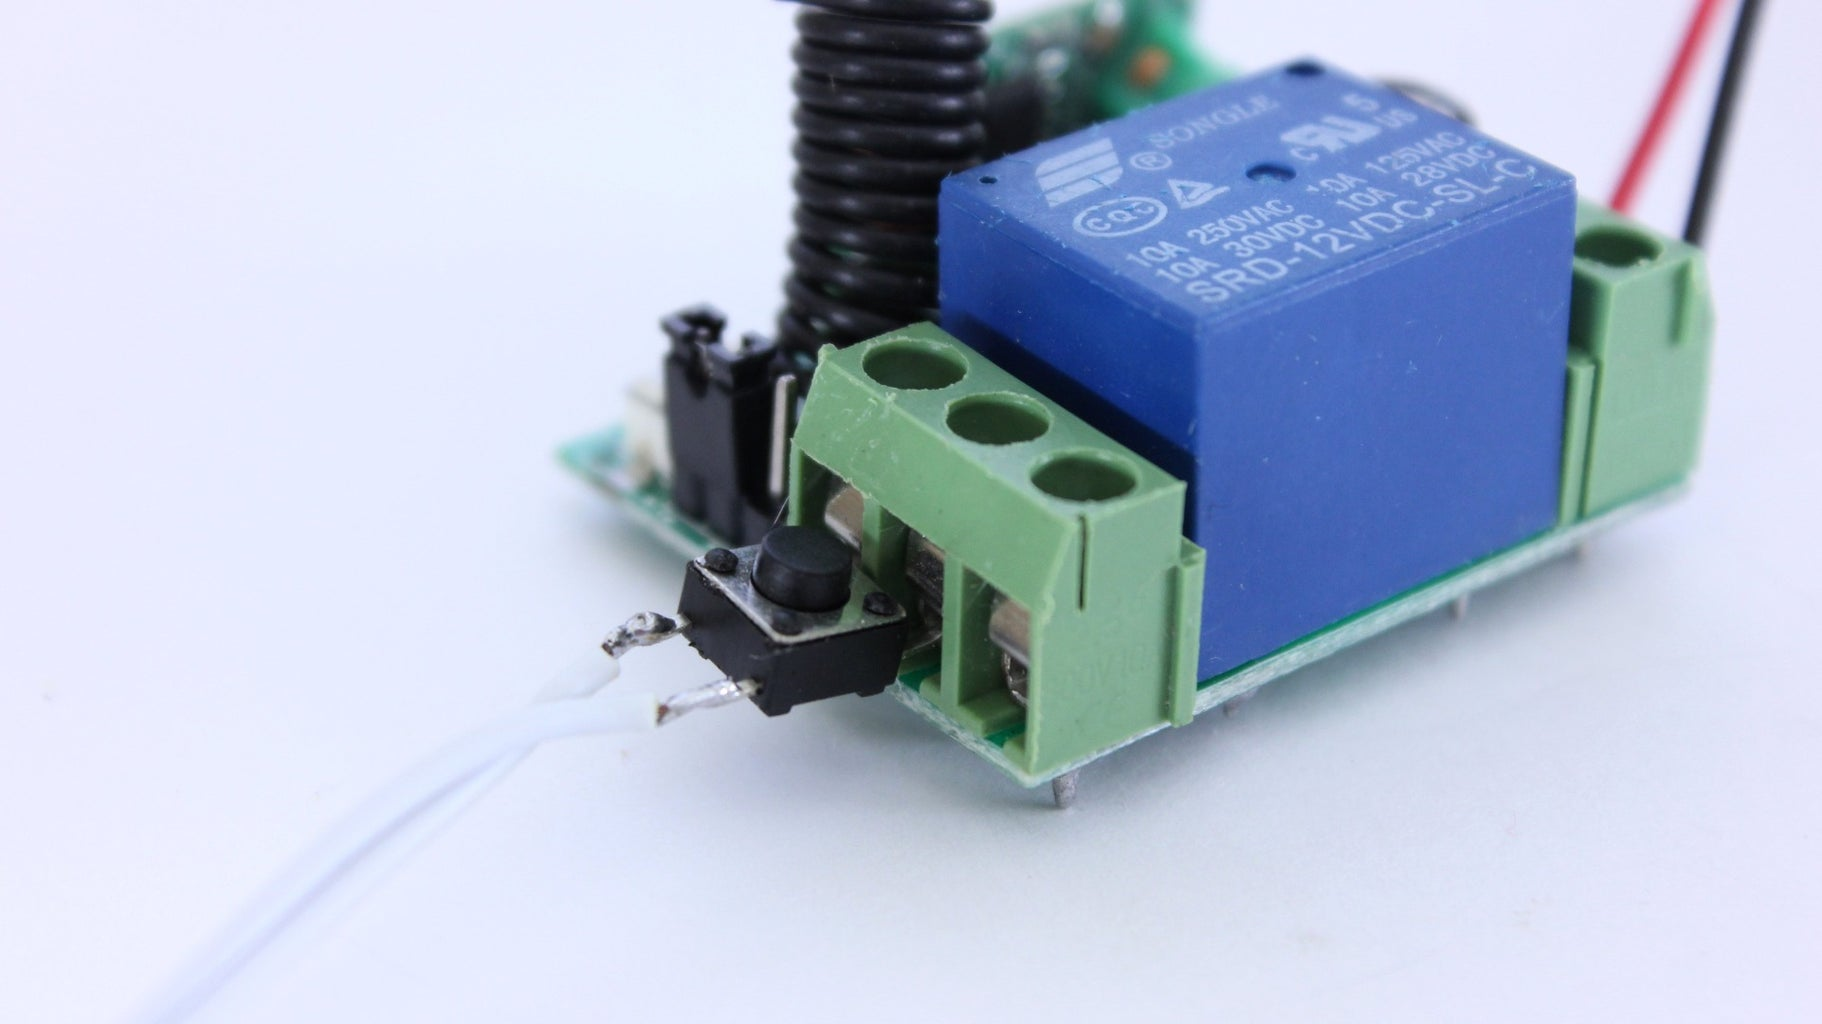 Connect the Switch to the Relay